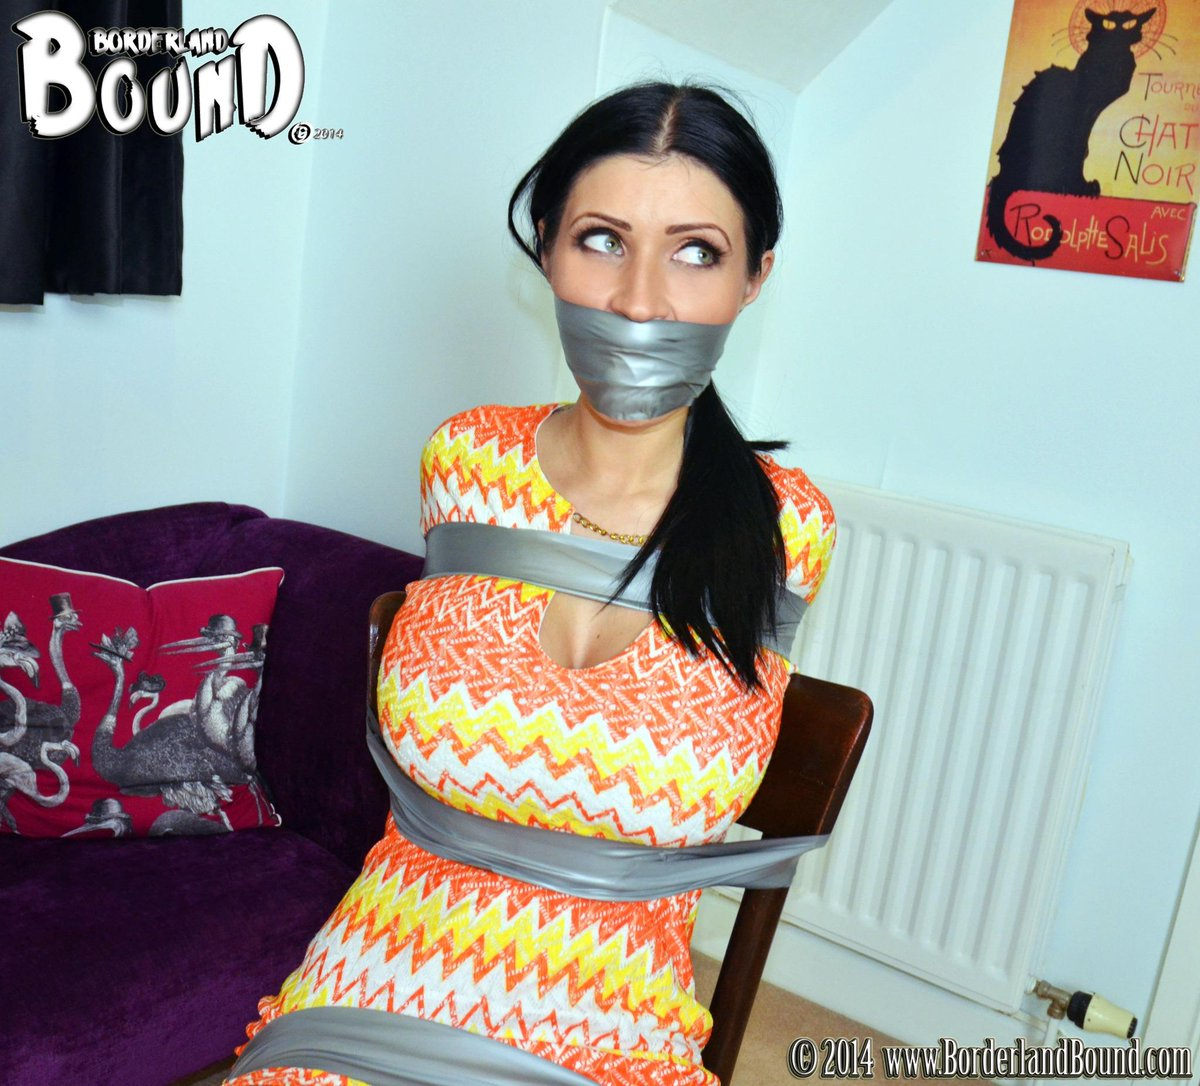 #Gorgeous @Lillyroma1 is left #tapebound & #gaggedup #HARD at home! Will she escape?? #probablynot #butmuchfuntowatch http://t.co/2ItoZ6l5Zv